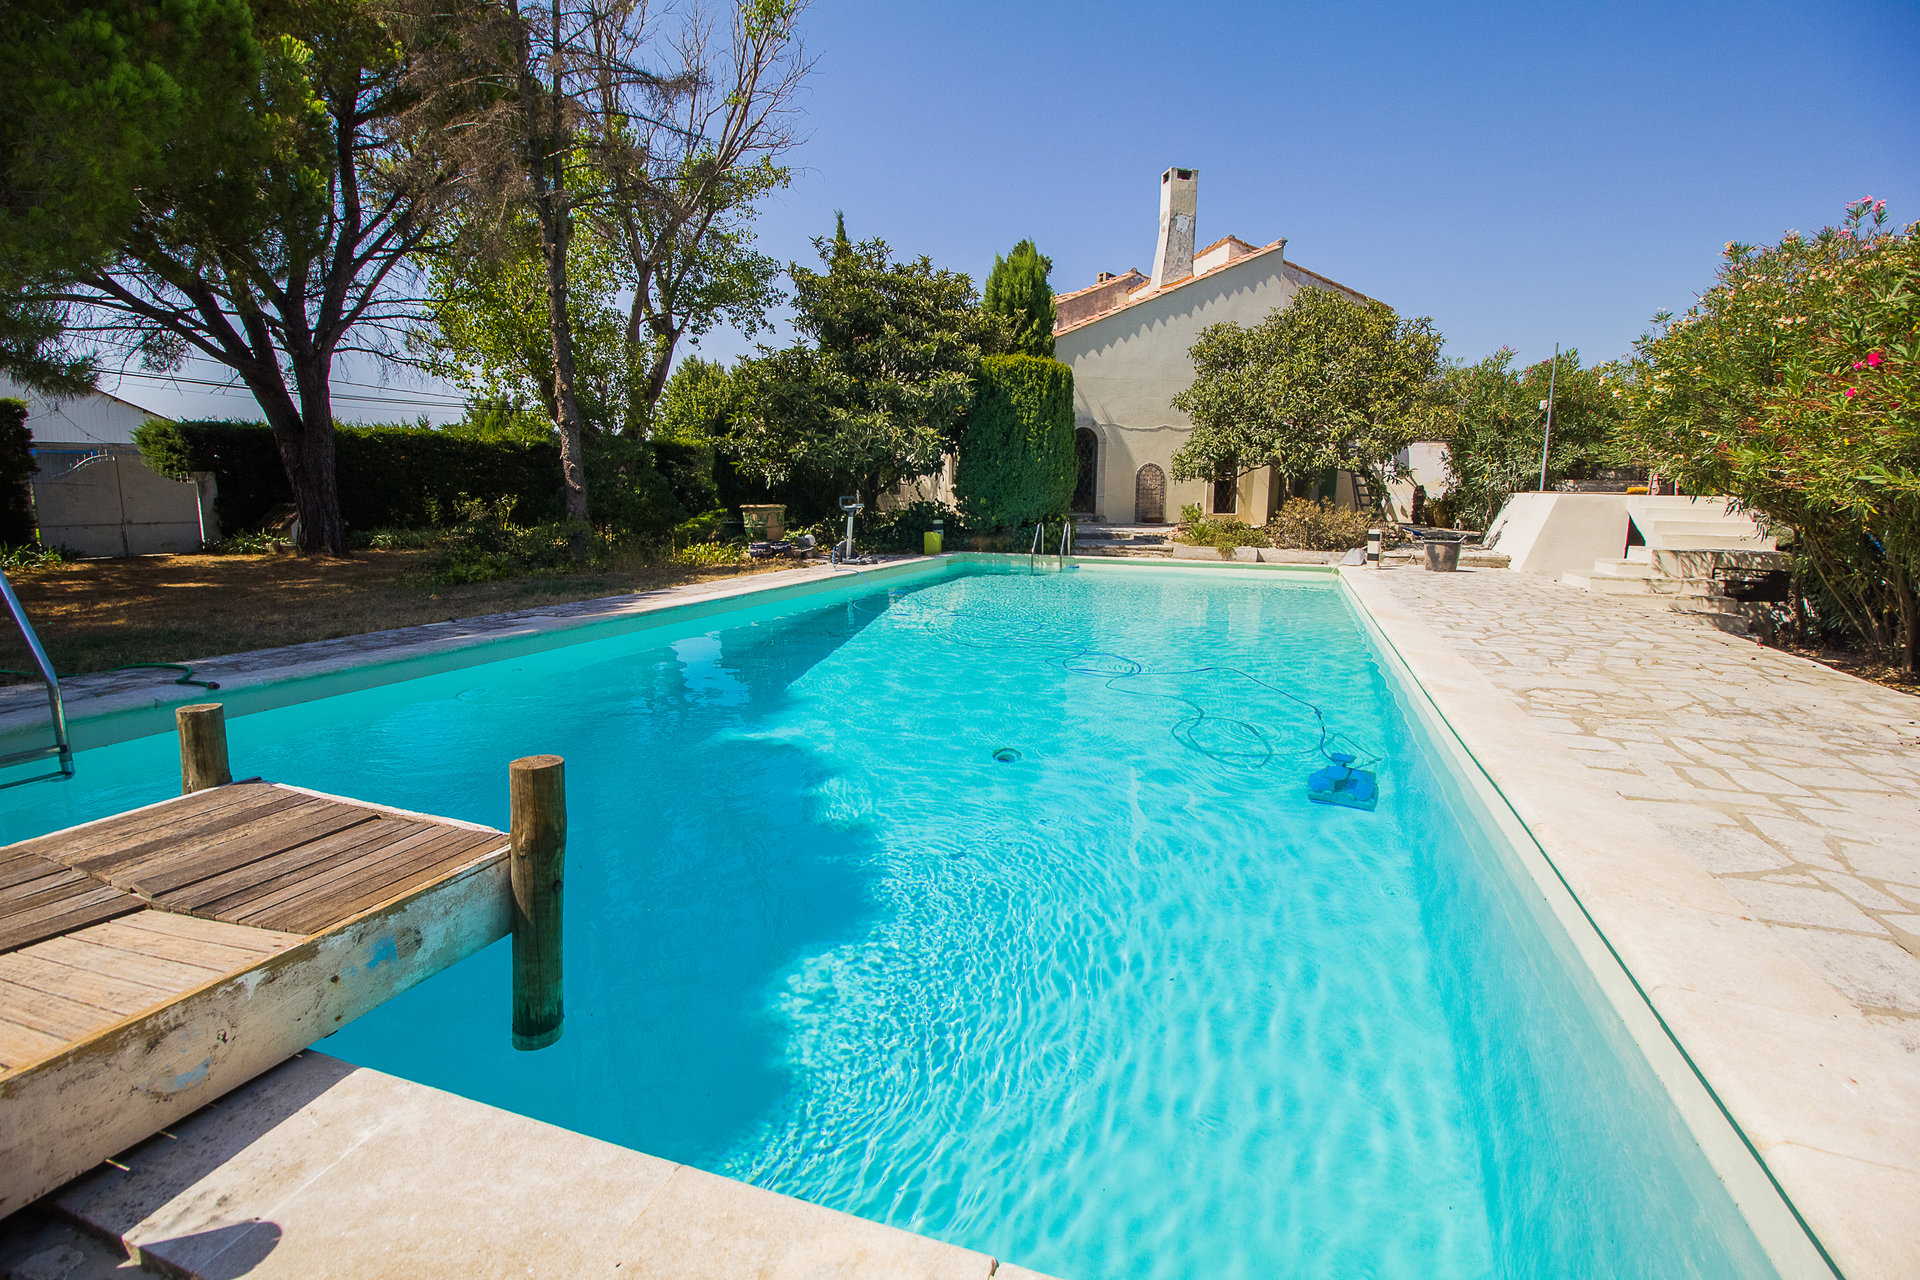 Large house with pool and mature gardens on the edge of the village